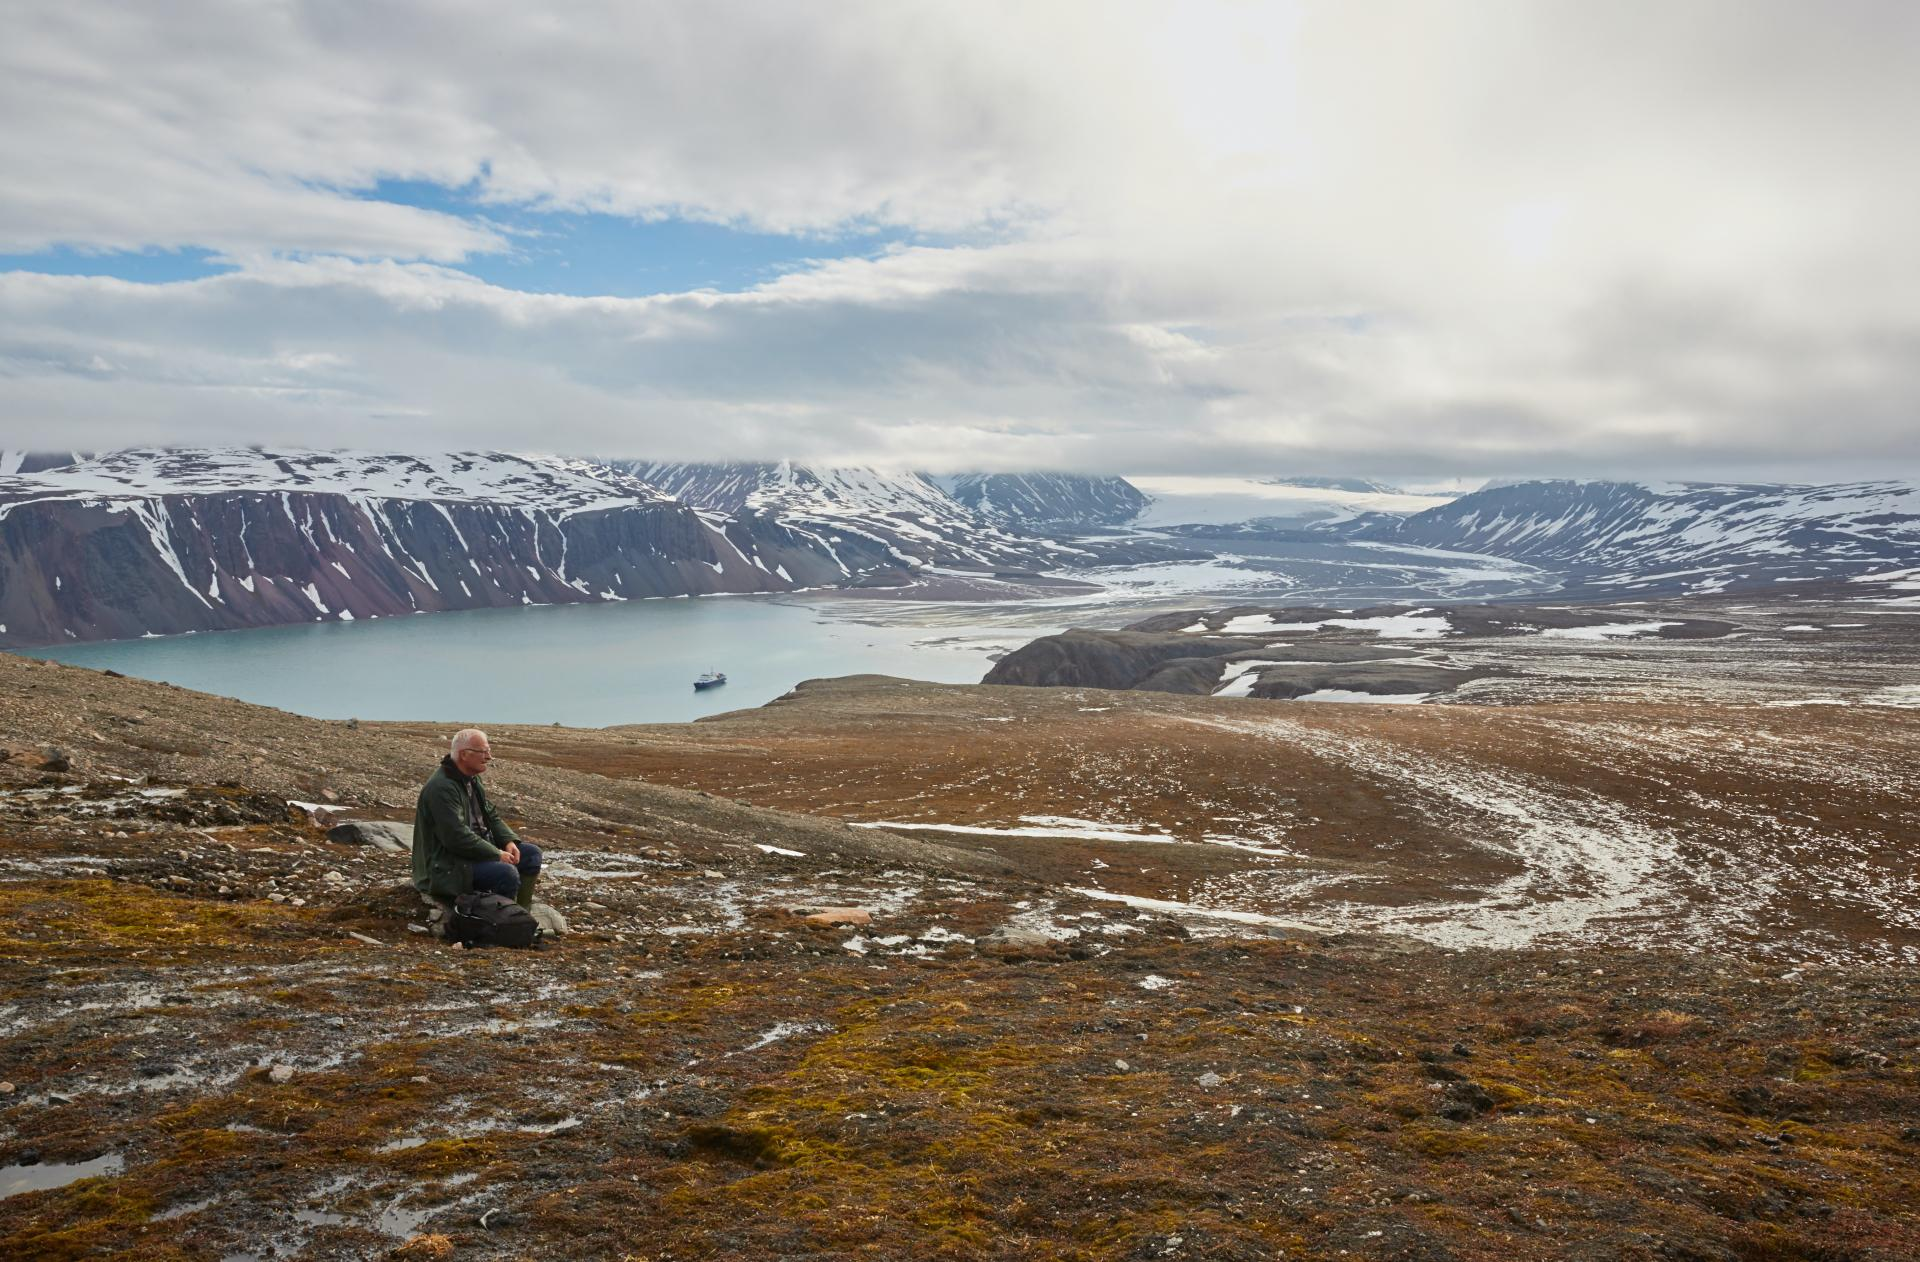 Northeast Spitsbergen, In the realm of Polar Bear & Ice � Summer Solstice